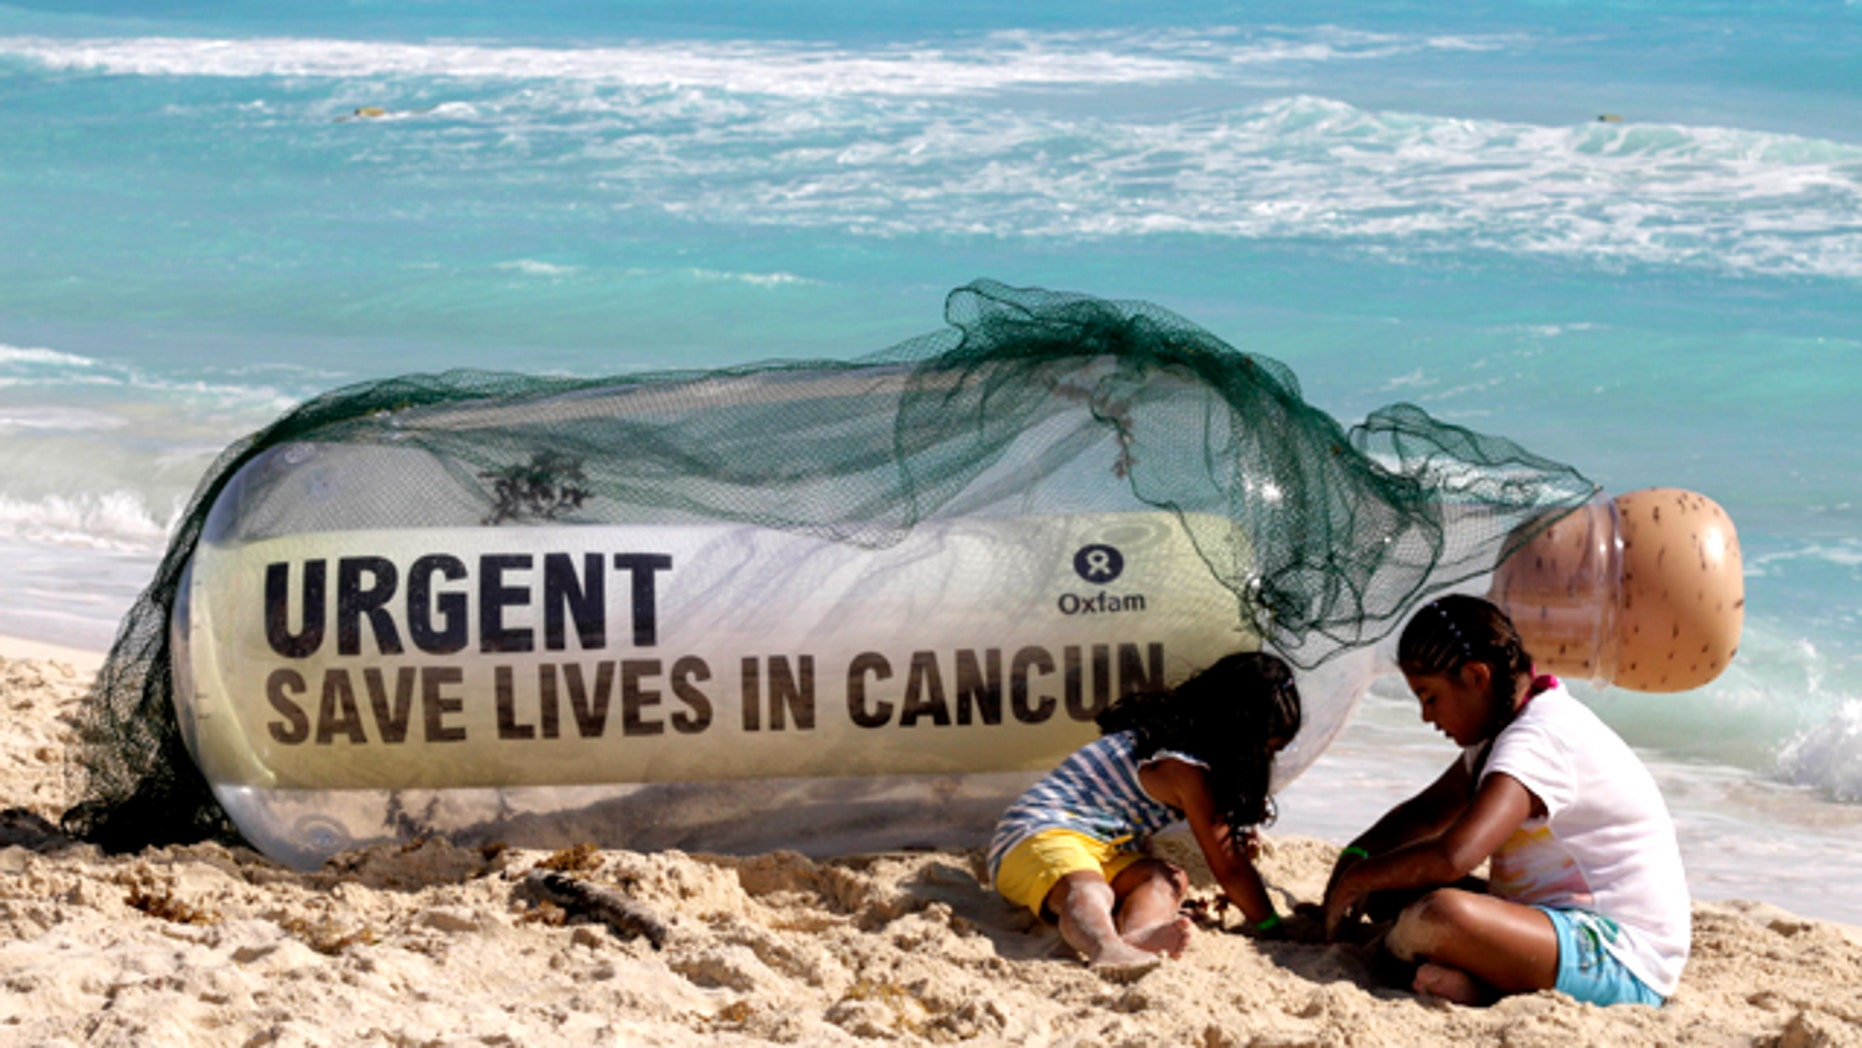 A giant message in a bottle from Oxfam International sits on the beach next to children playing in Cancun, Mexico, Sunday, Nov. 28, 2010. Facing another year without a global deal to curb climate change, the world's nations will spend the next two weeks in Cancun, Mexico, during the annual conference of the 193-nation U.N. climate treaty, debating how to mobilize money to to tackle a changing climate.